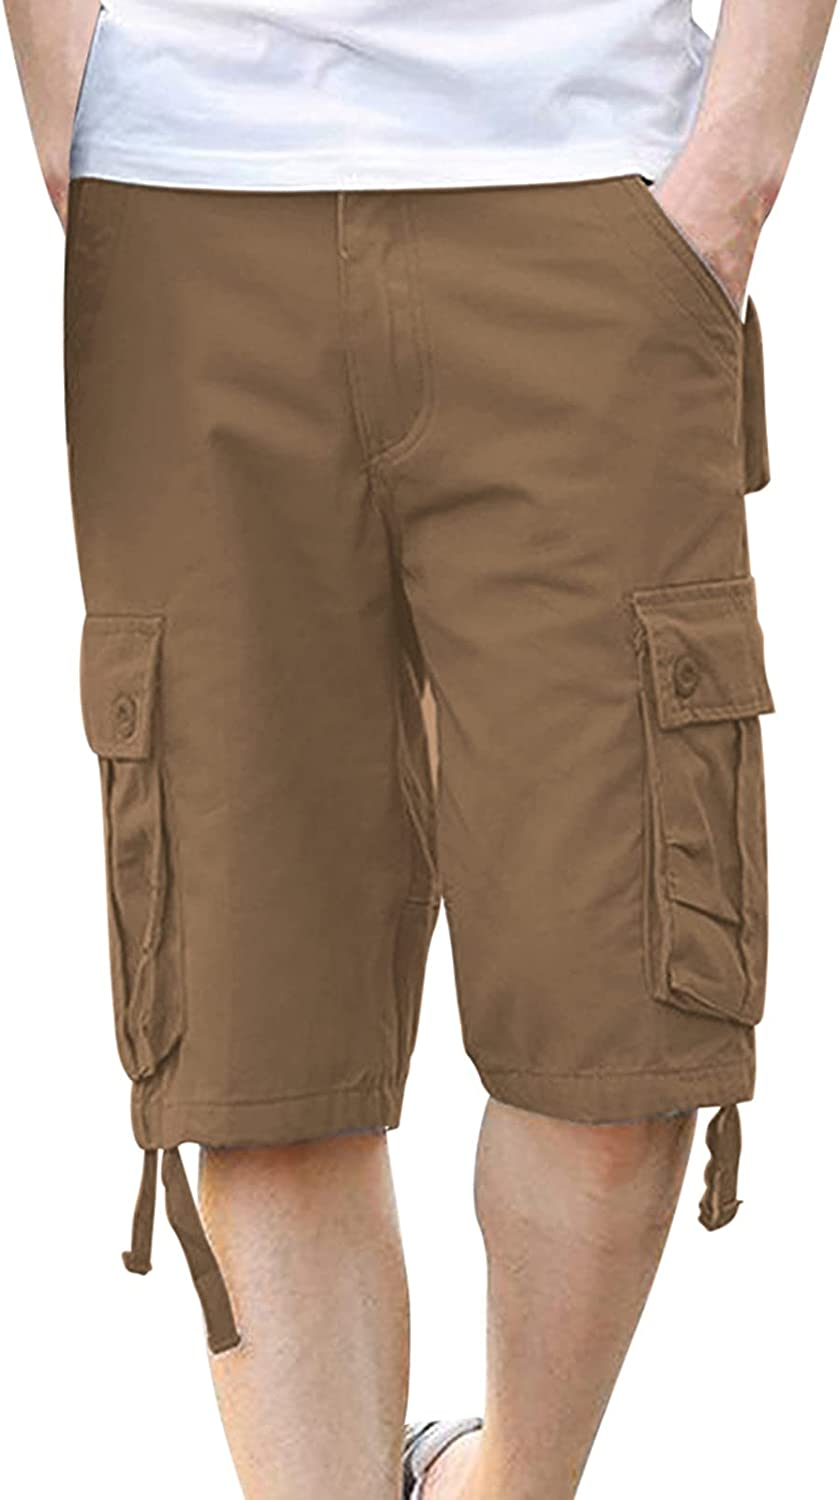 Huangse Men's Plus Size Classic Cargo Shorts Belted Zip Up Relaxed Fit Multi-Pockets Casual Outdoor Lightweight Work Shorts